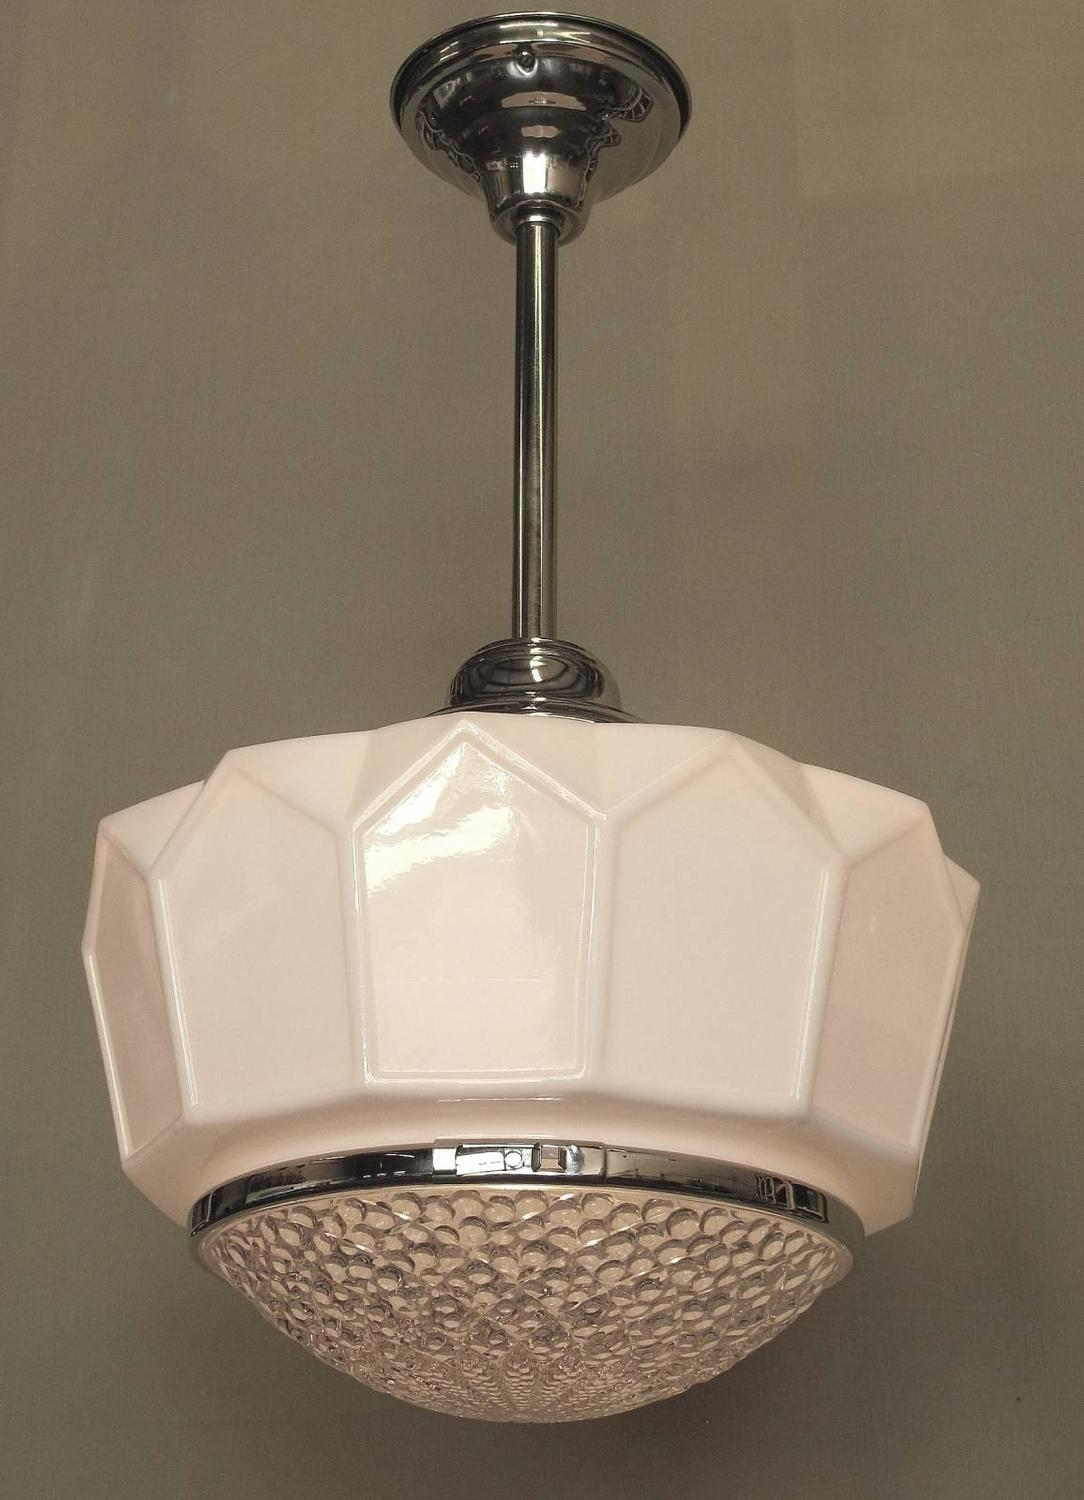 1920s bathroom light fixtures single only large 1920s ceiling fixture at 1stdibs 15263